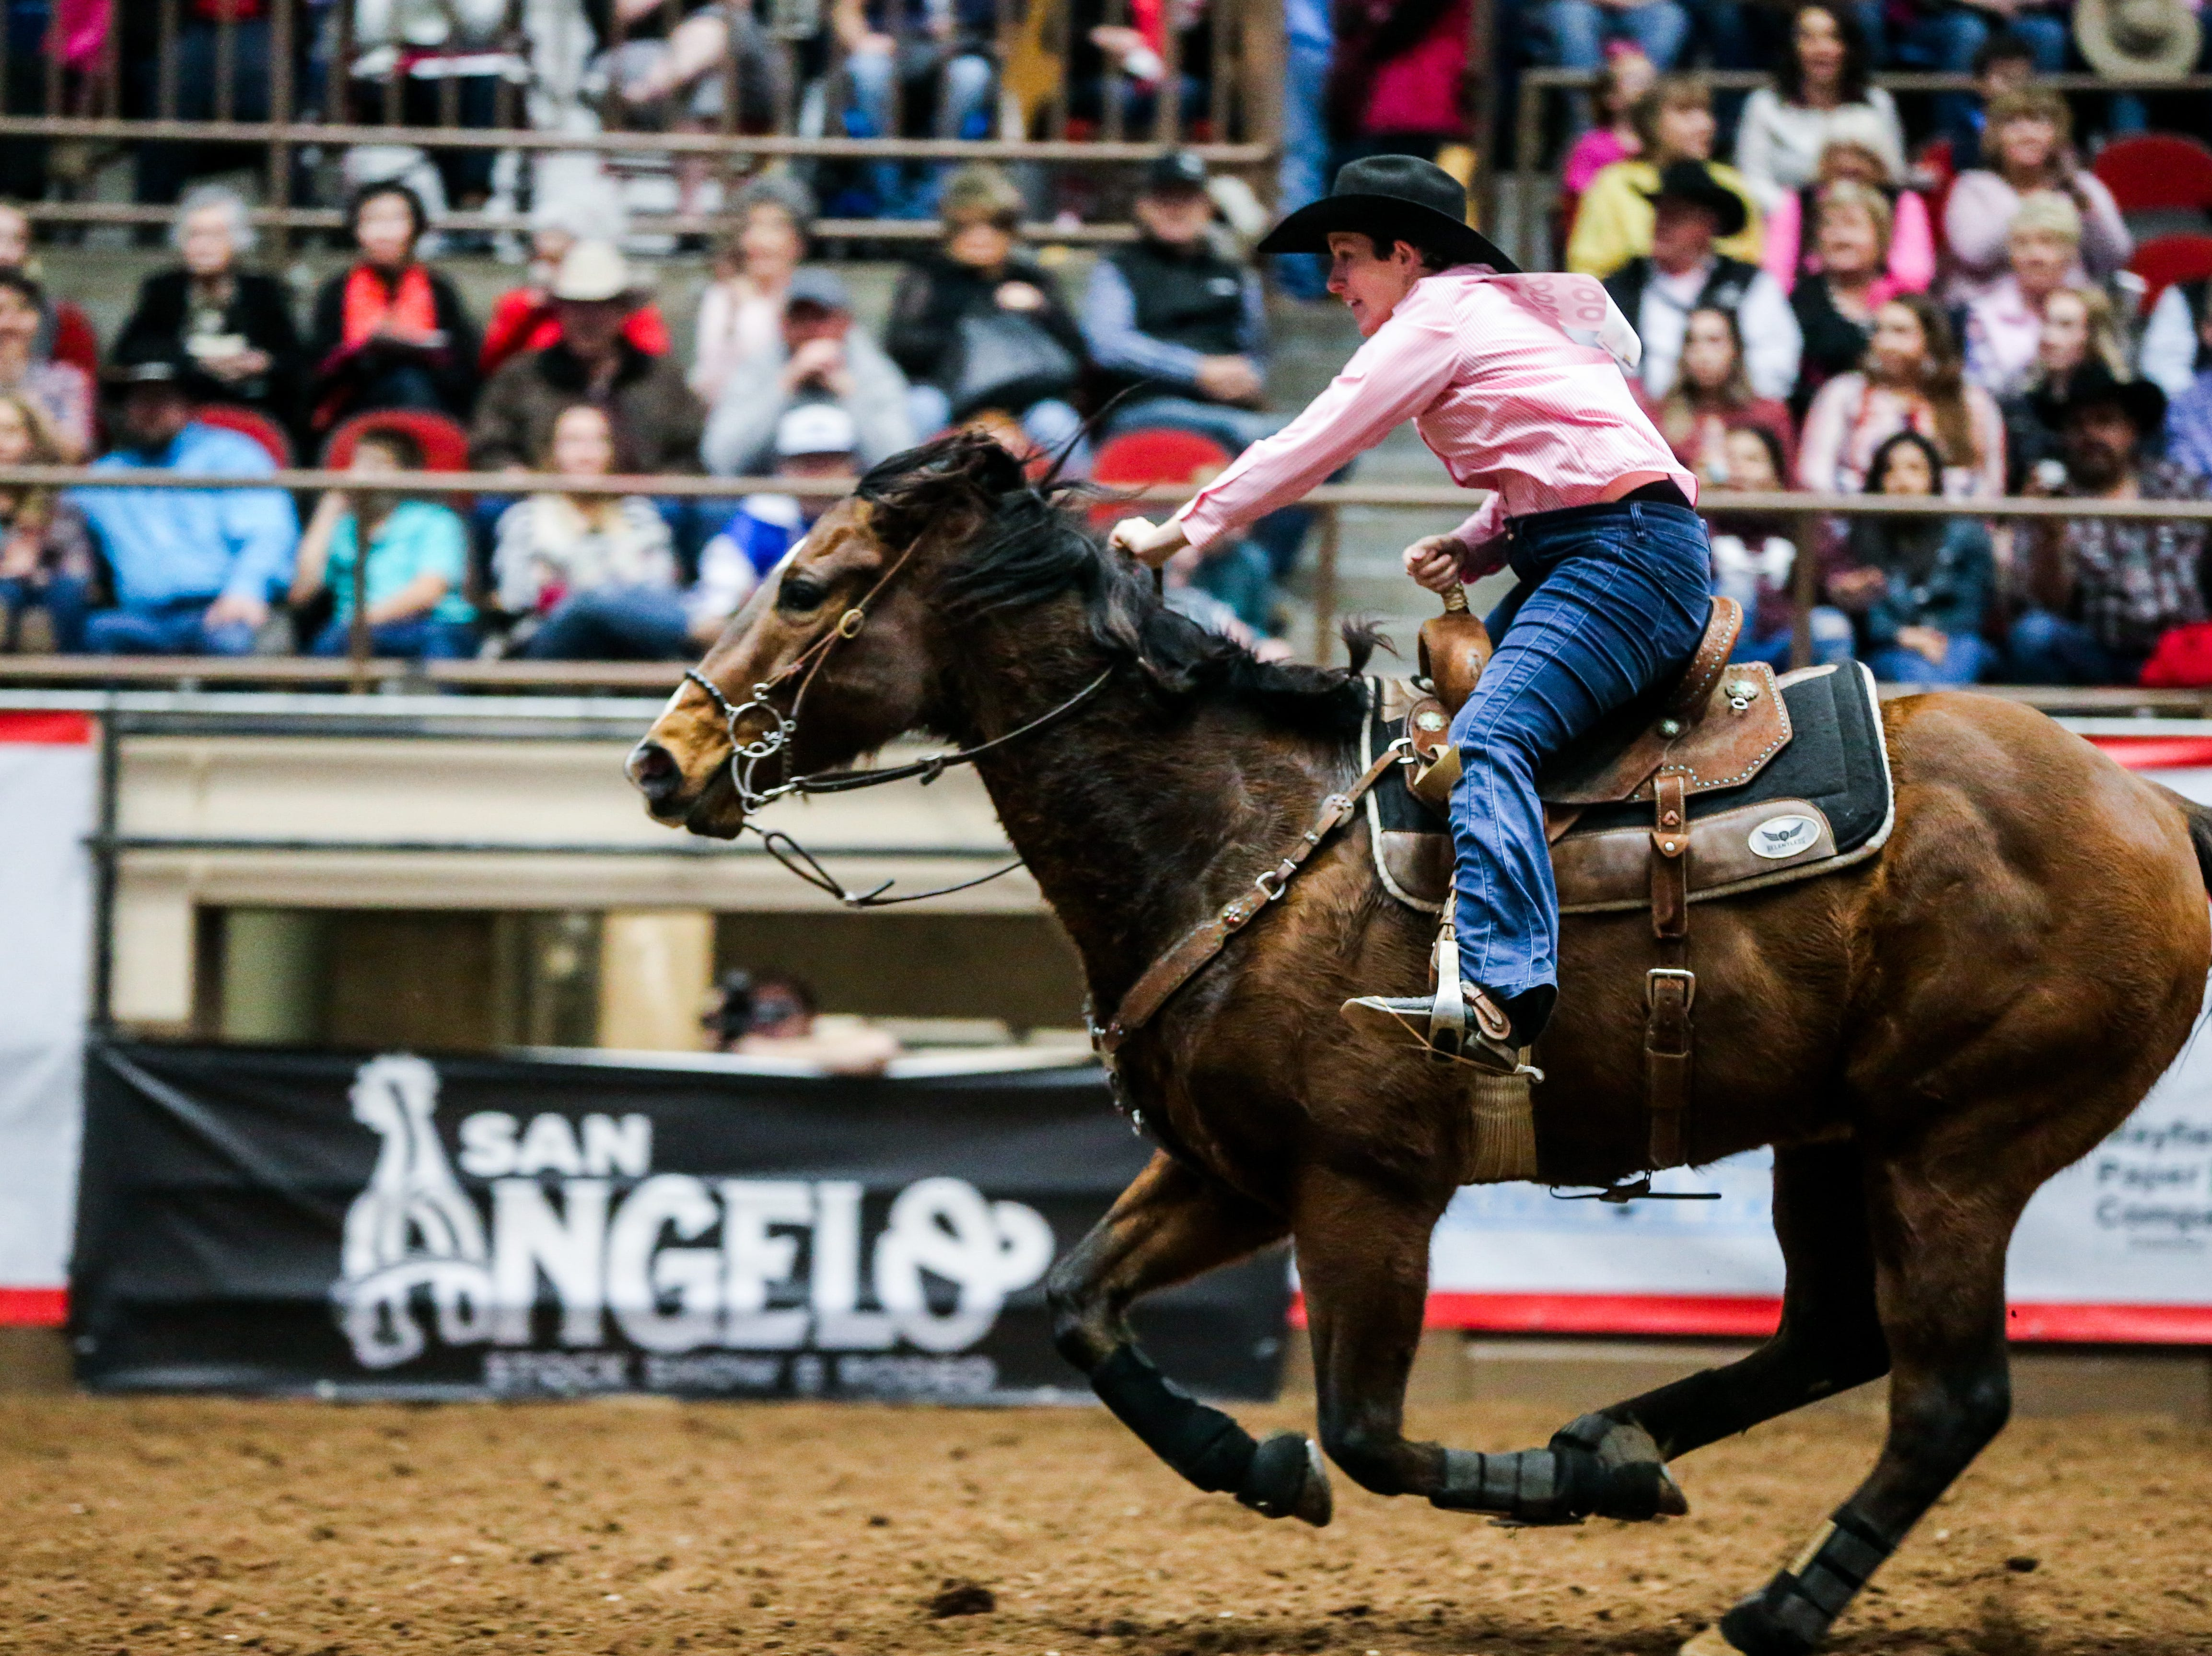 Jill Tanner barrel races during the San Angelo Stock Show & Rodeo performance Thursday, Feb. 14, 2019, at Foster Communications Coliseum.